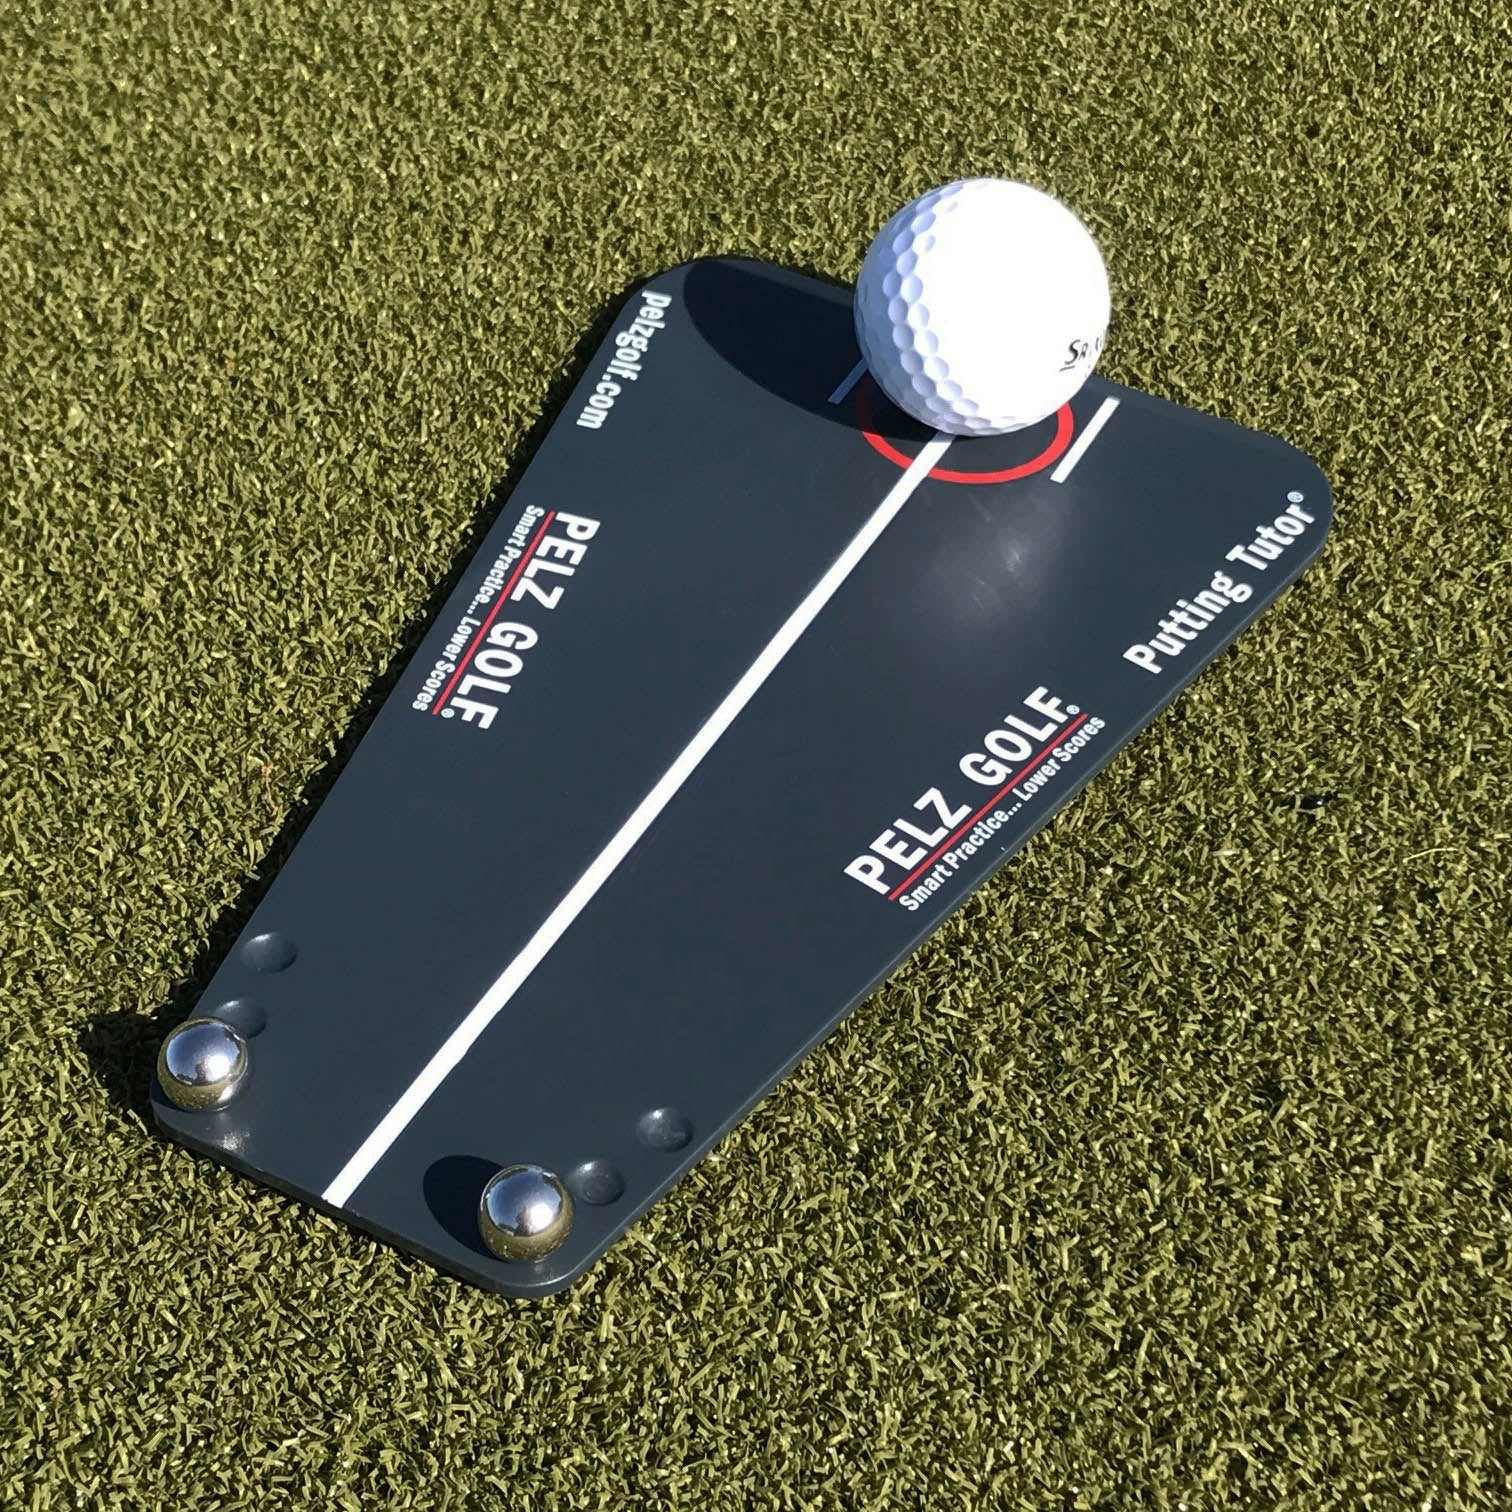 Dave Pelz's Putting Tutor